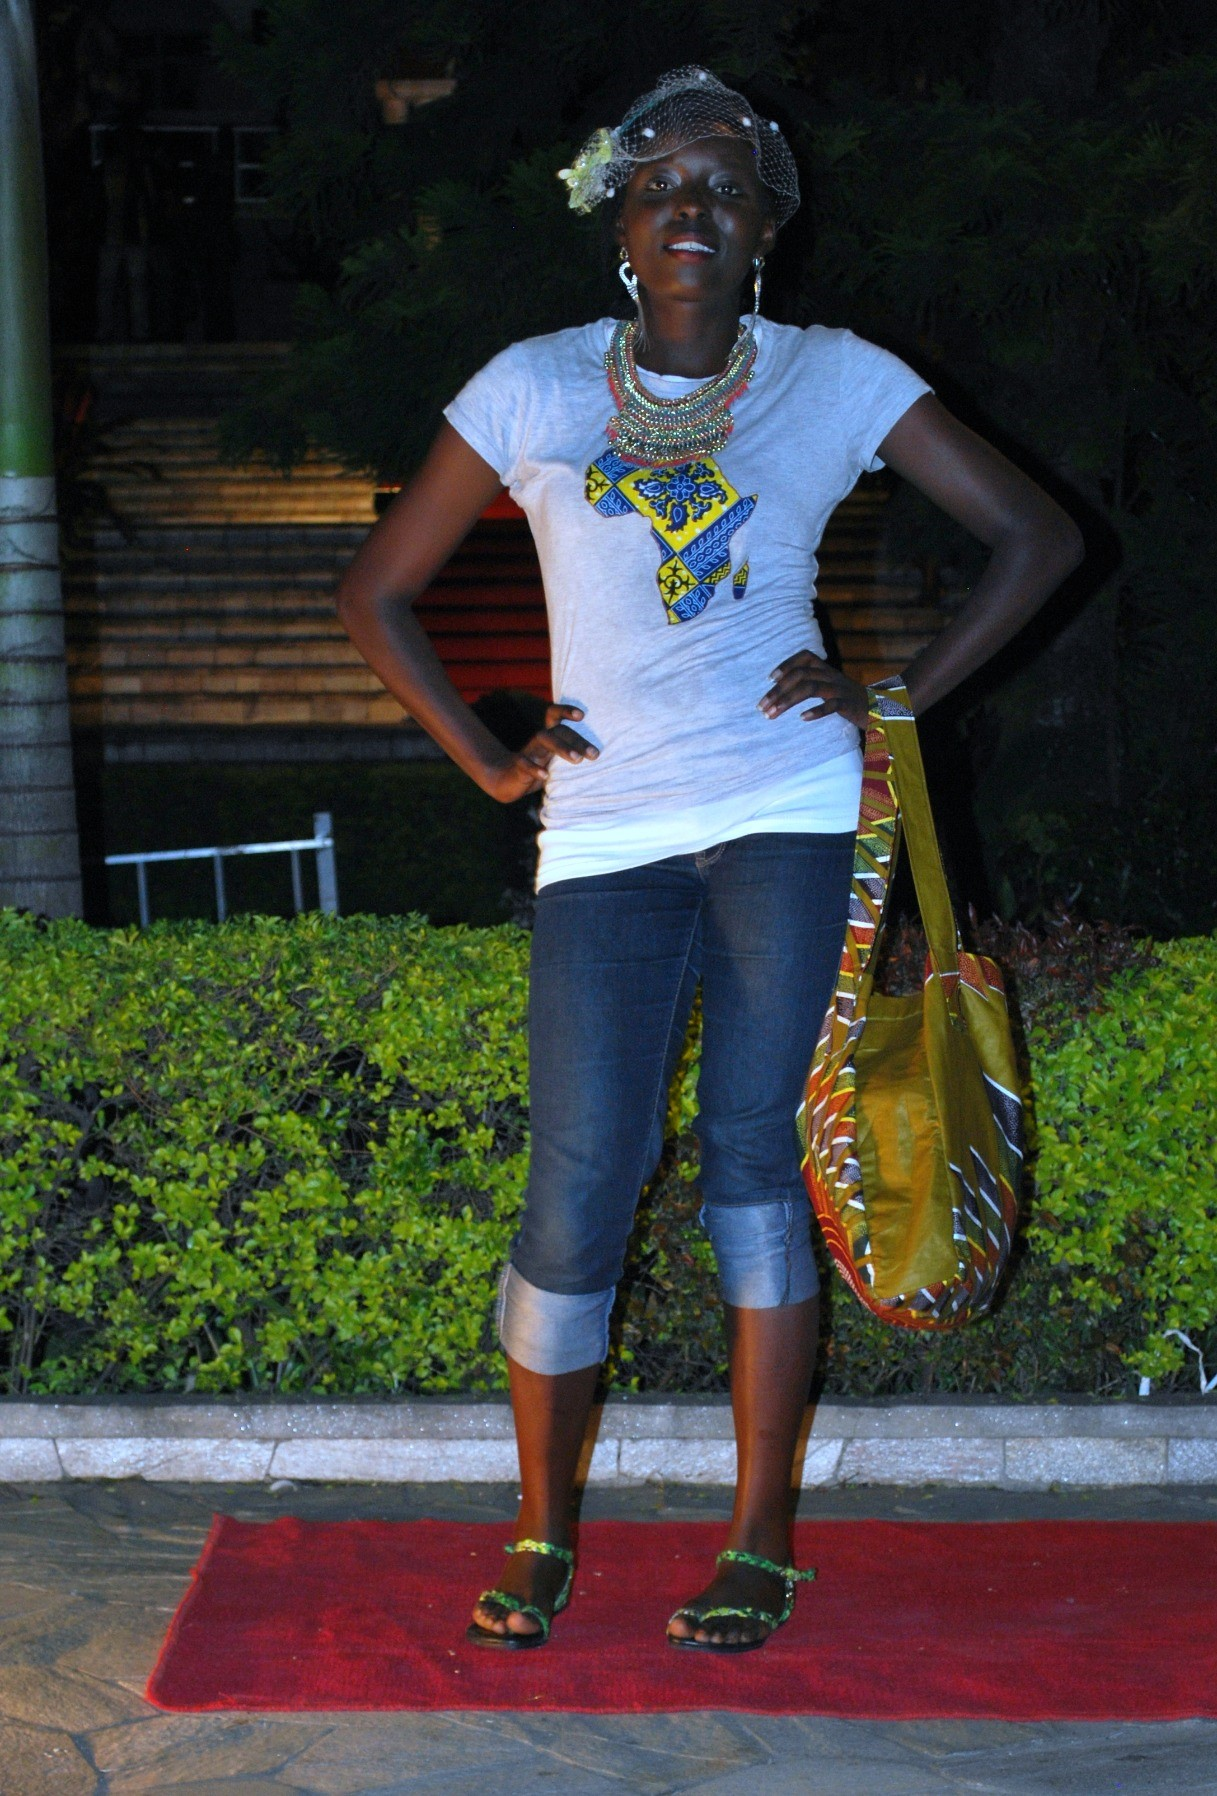 Voices of Congo: Mamafrica and Products With a Purpose